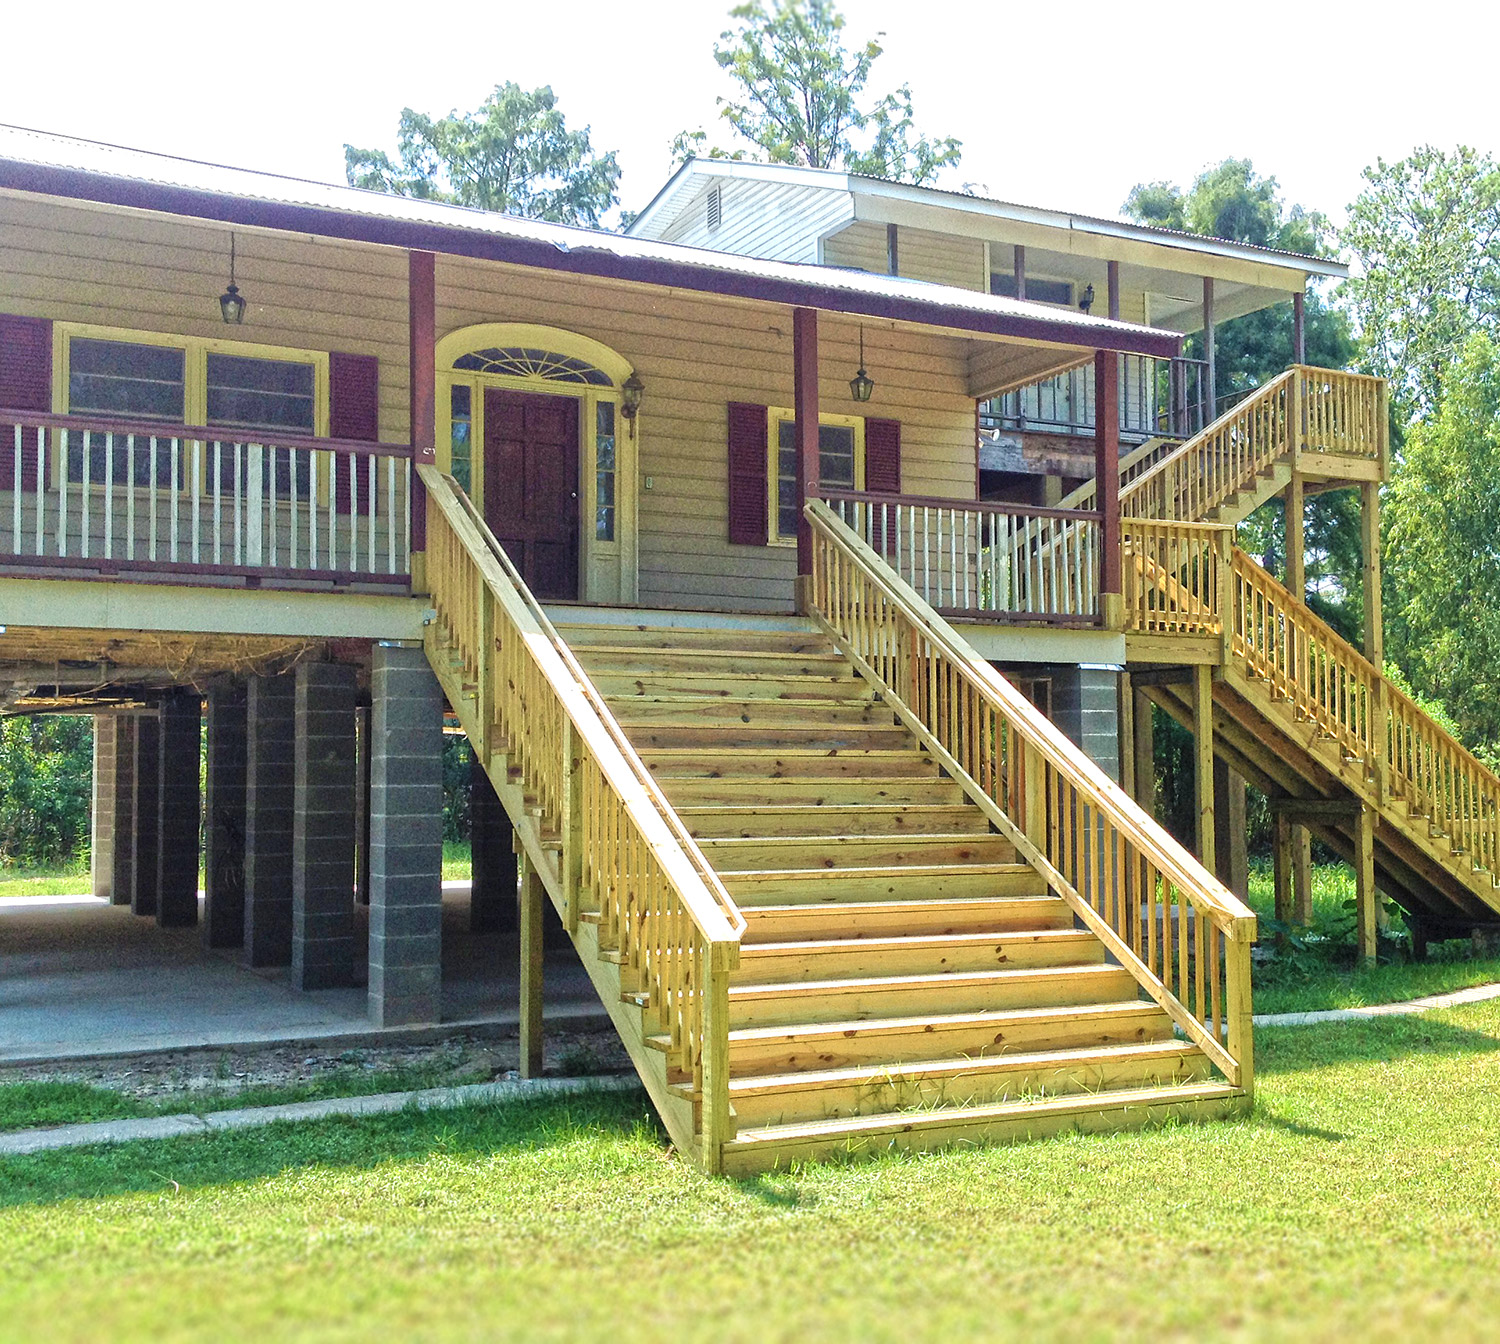 Raised Pier Or Open Foundation House Raise Elevation Grant Before After A1 Remodeling